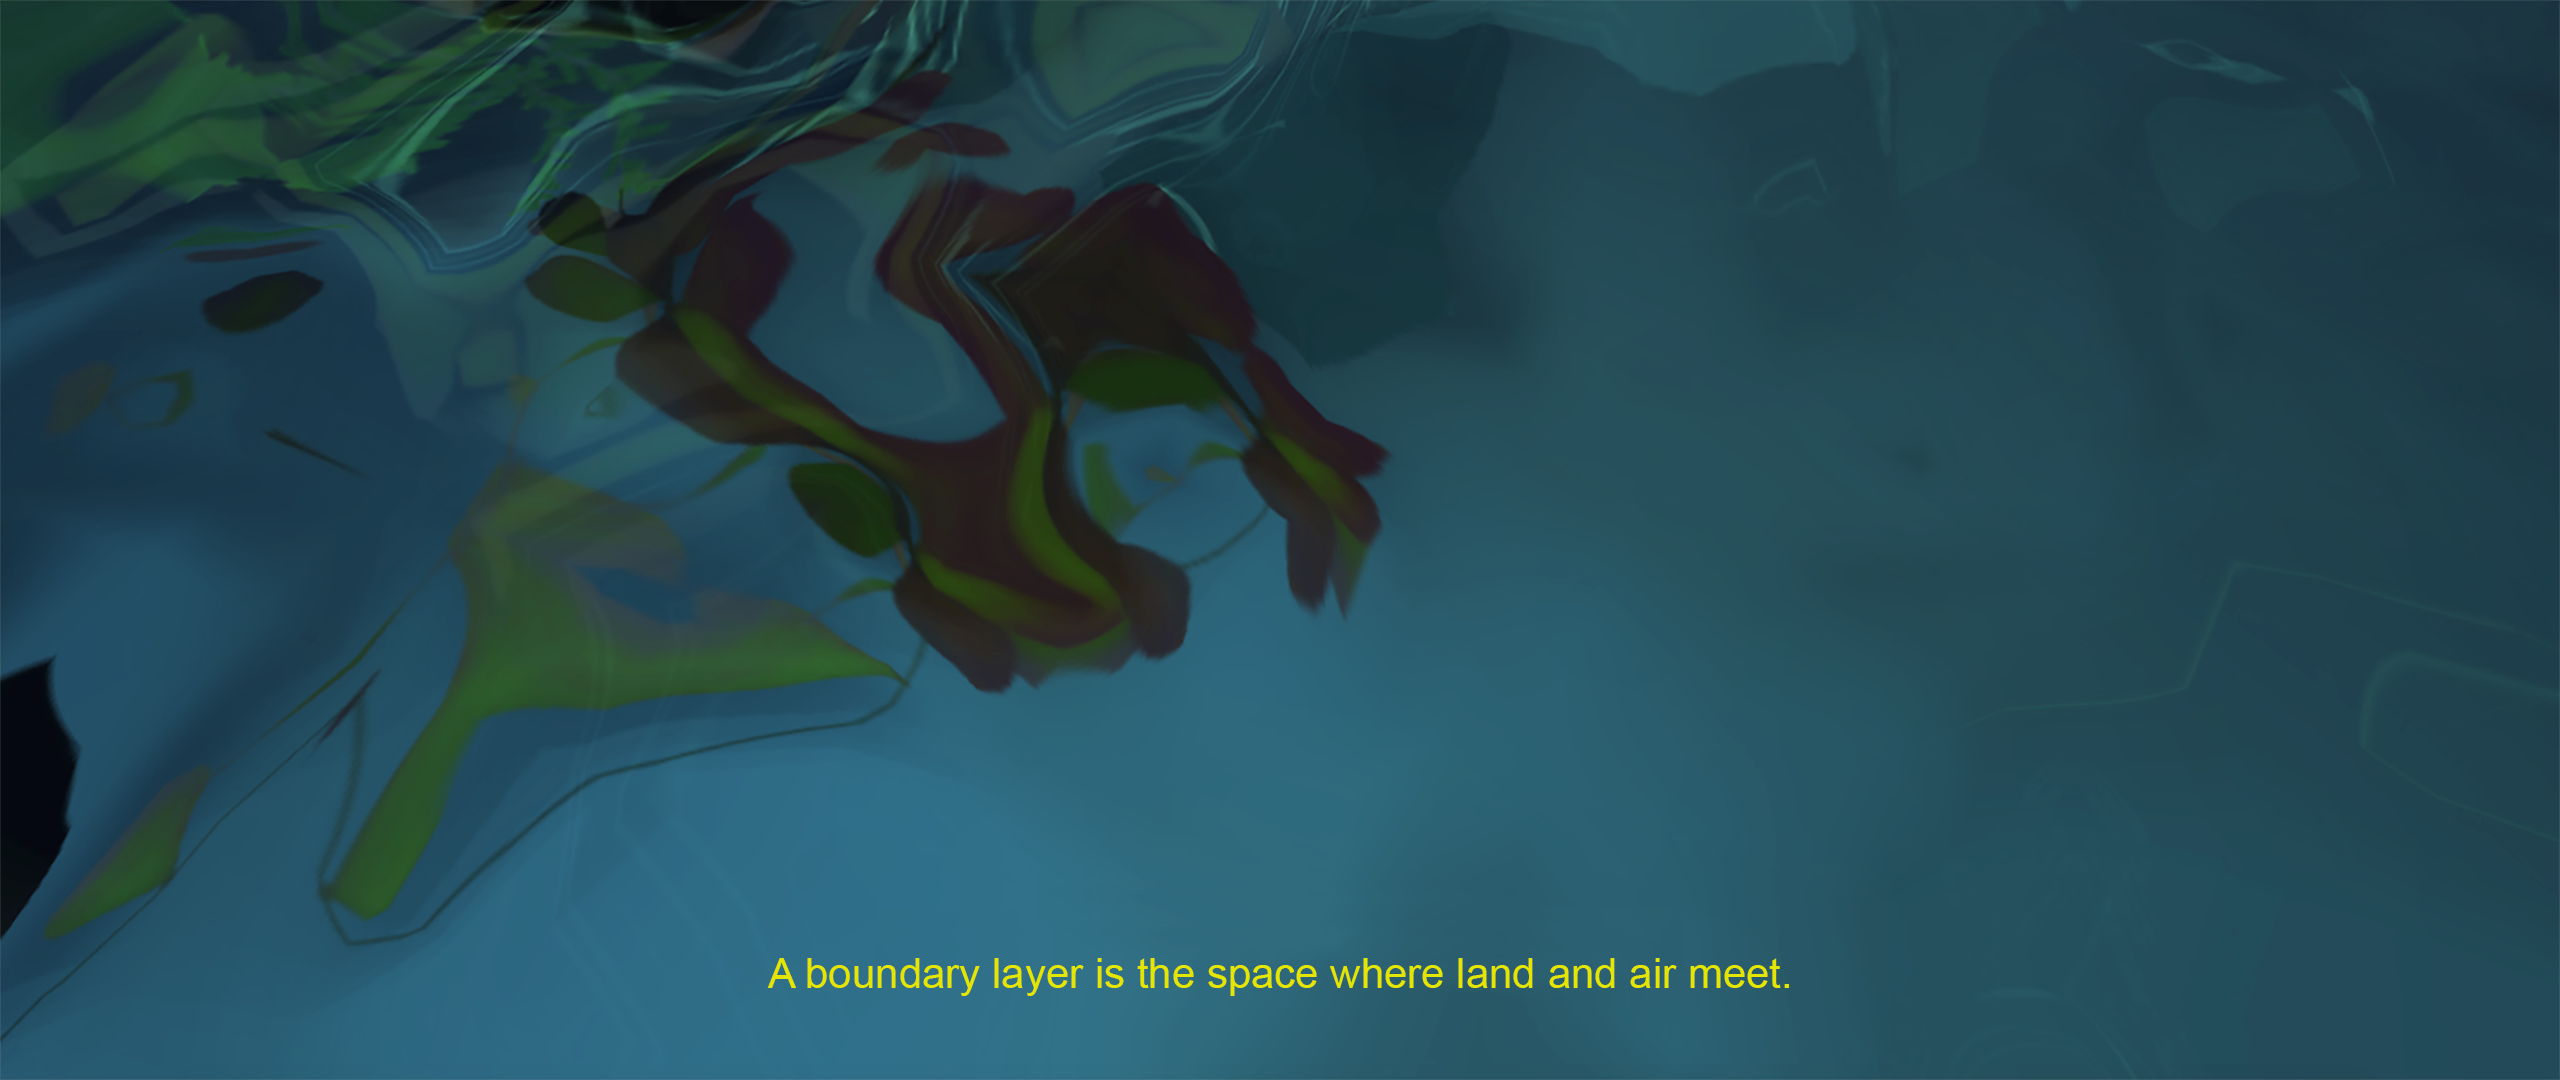 Large image with teal blue textured, reflective swirls on digitally generated water. Small yellow text centred at the bottom of the image reads: A boundary layer is the space where land and air meet.